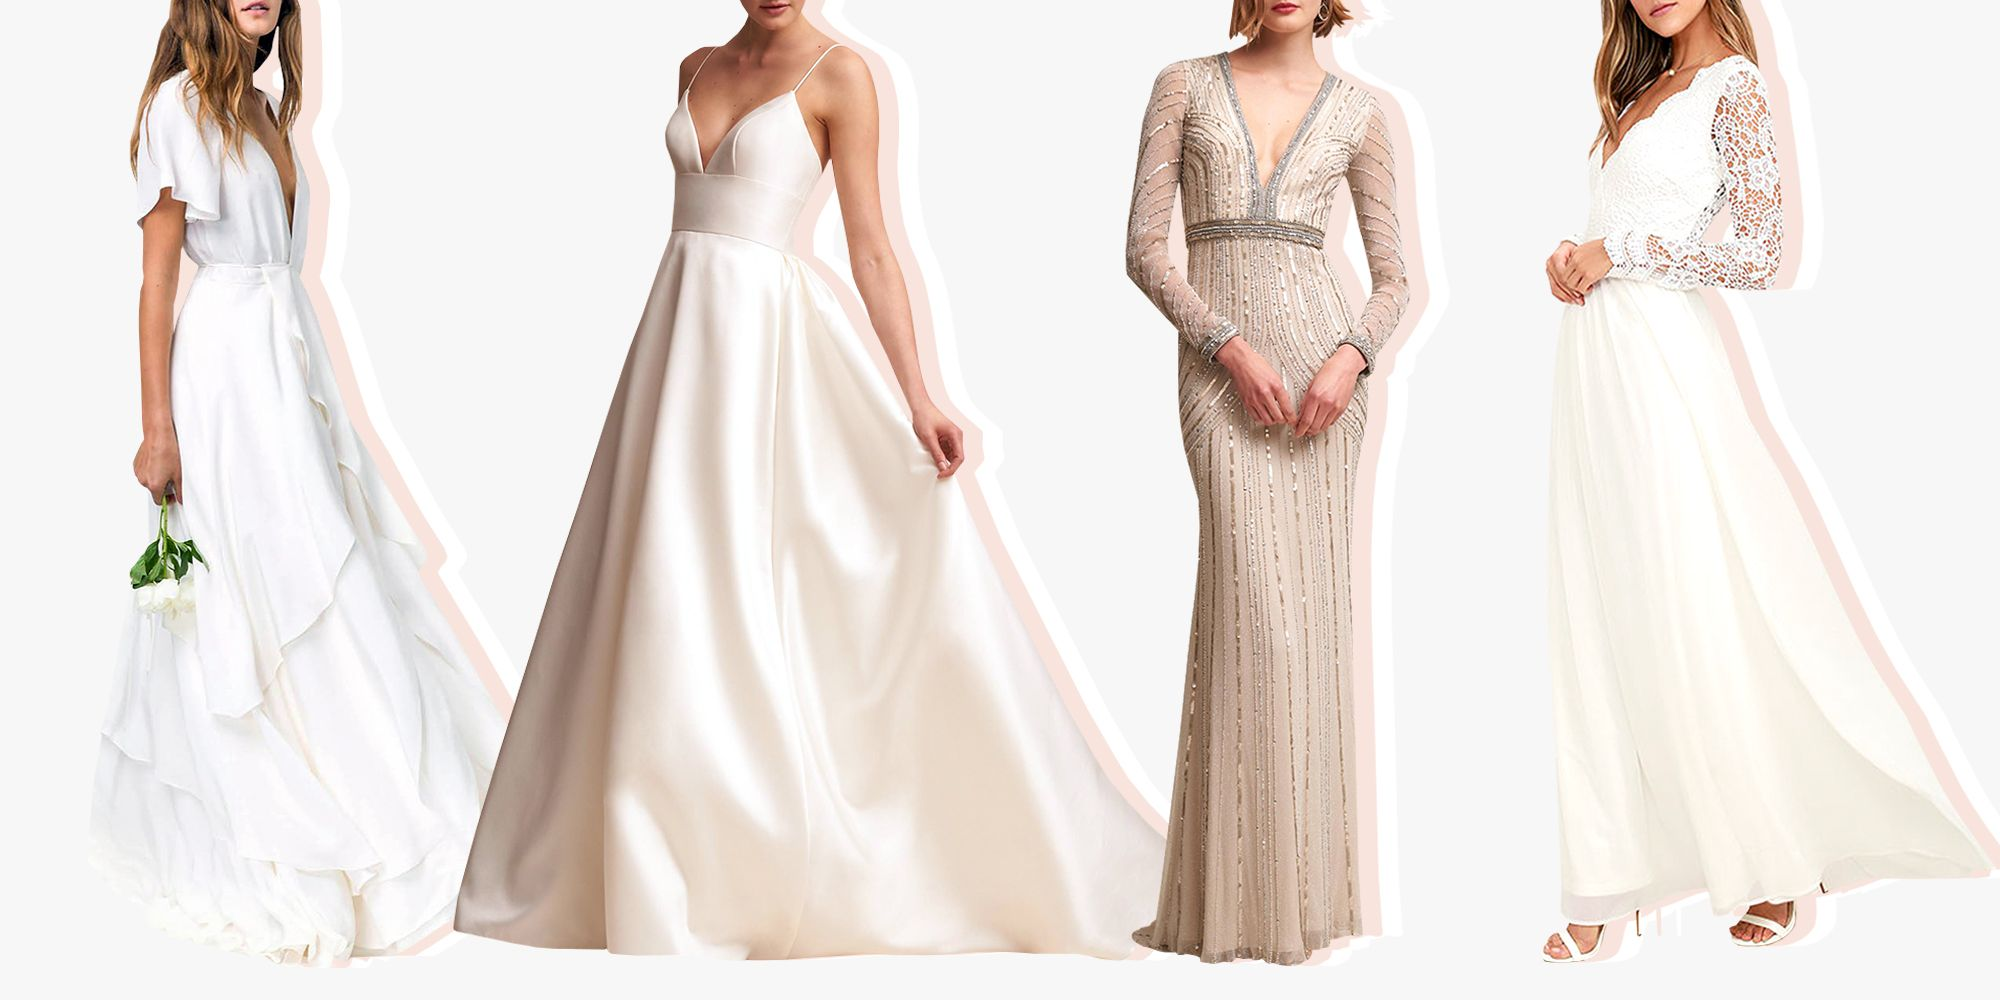 11 Gorgeous Fall Wedding Dresses to Wear Down the Aisle